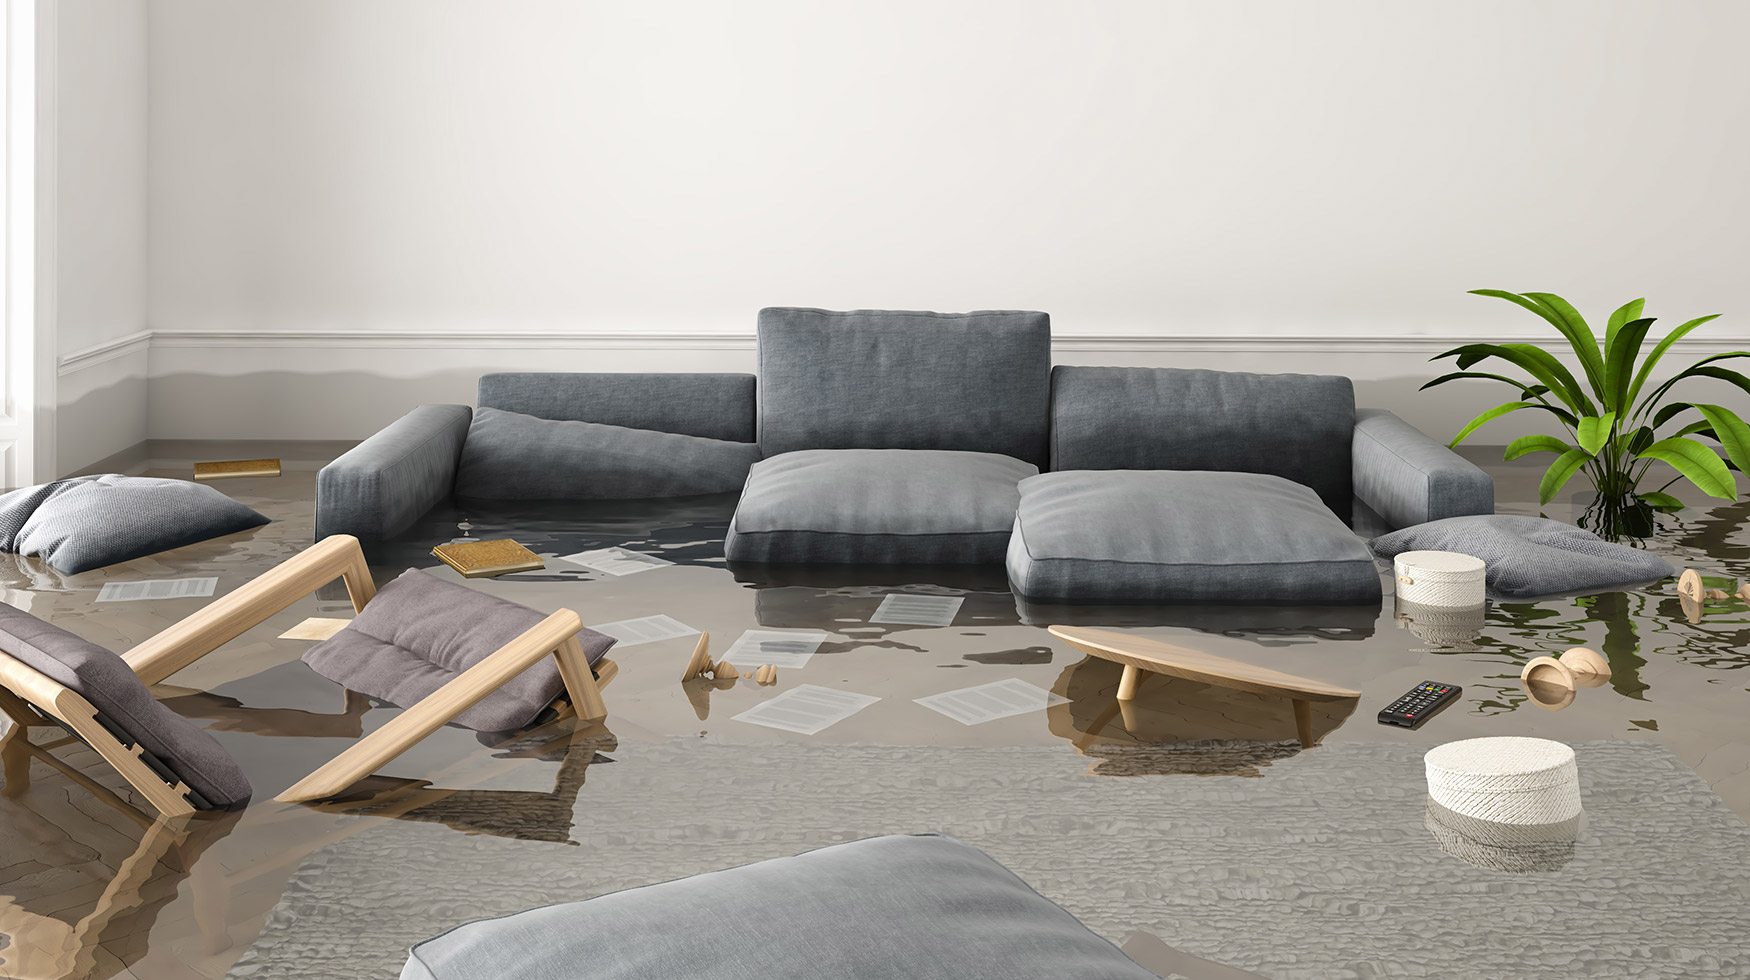 Solution contents restoration after flood damage for insurance agents and property owners